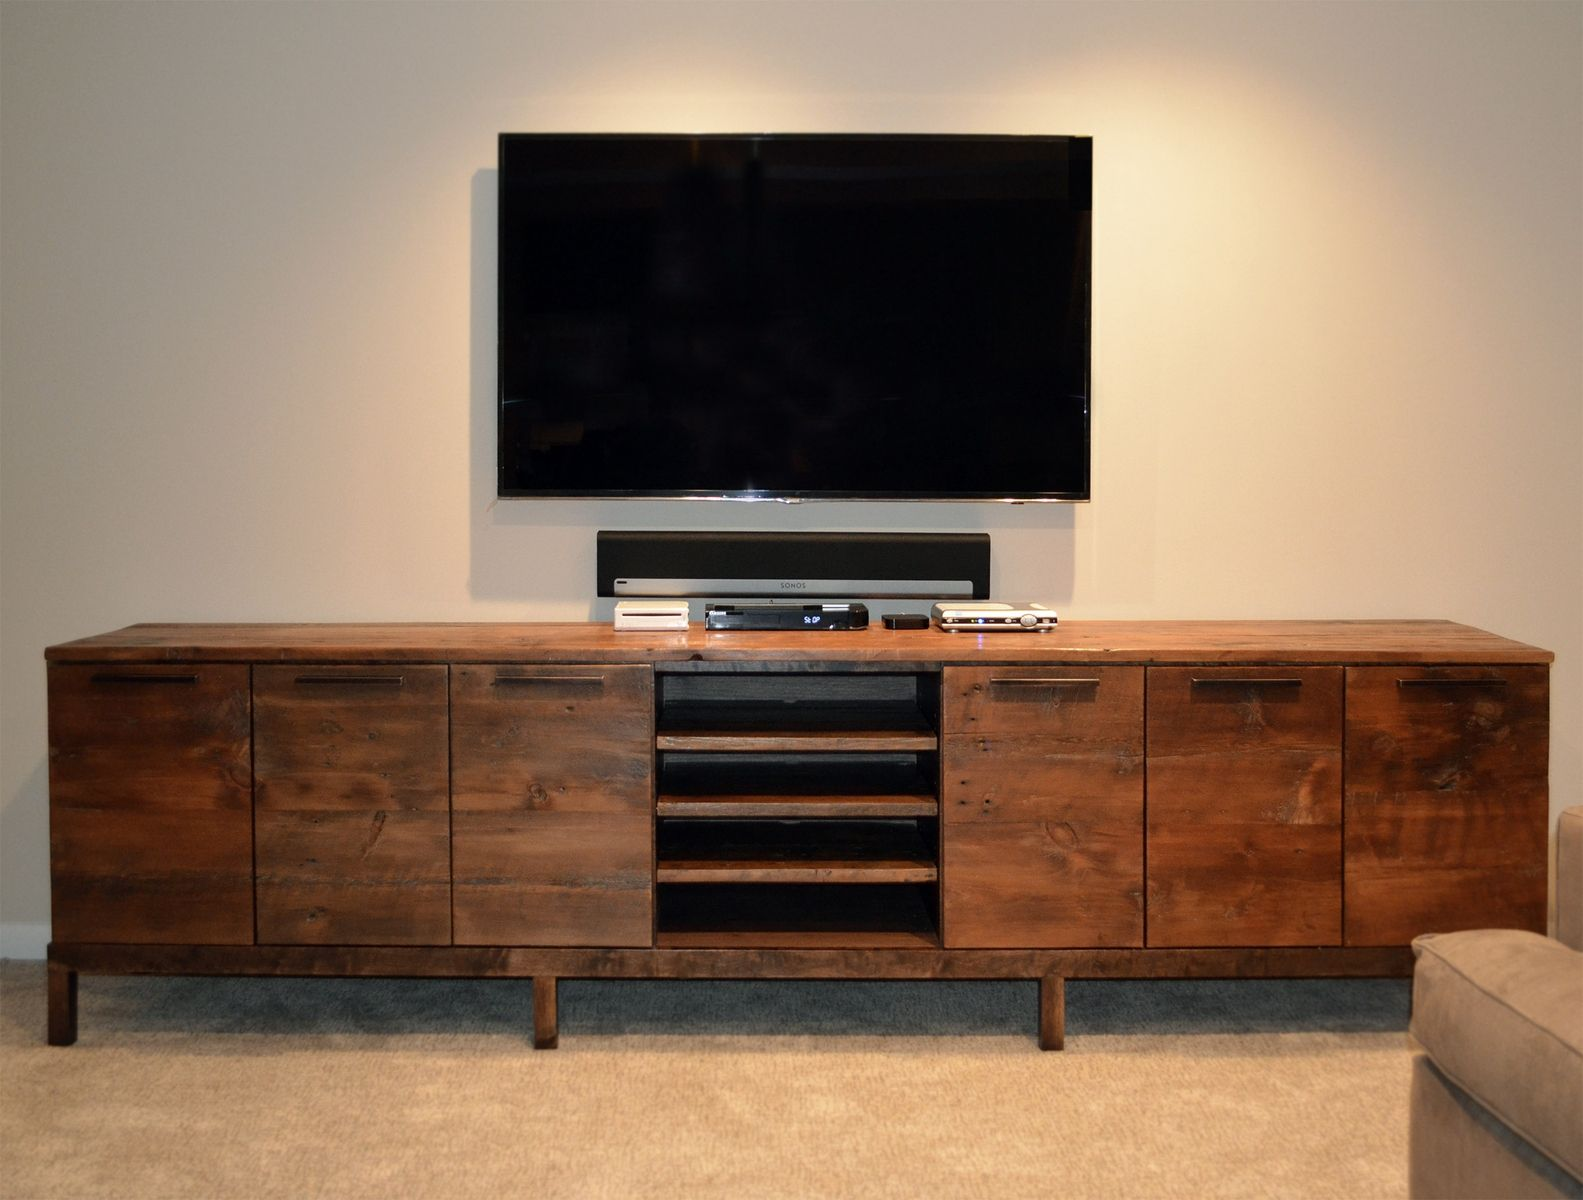 handmade reclaimed wood media center console by abodeacious. Black Bedroom Furniture Sets. Home Design Ideas